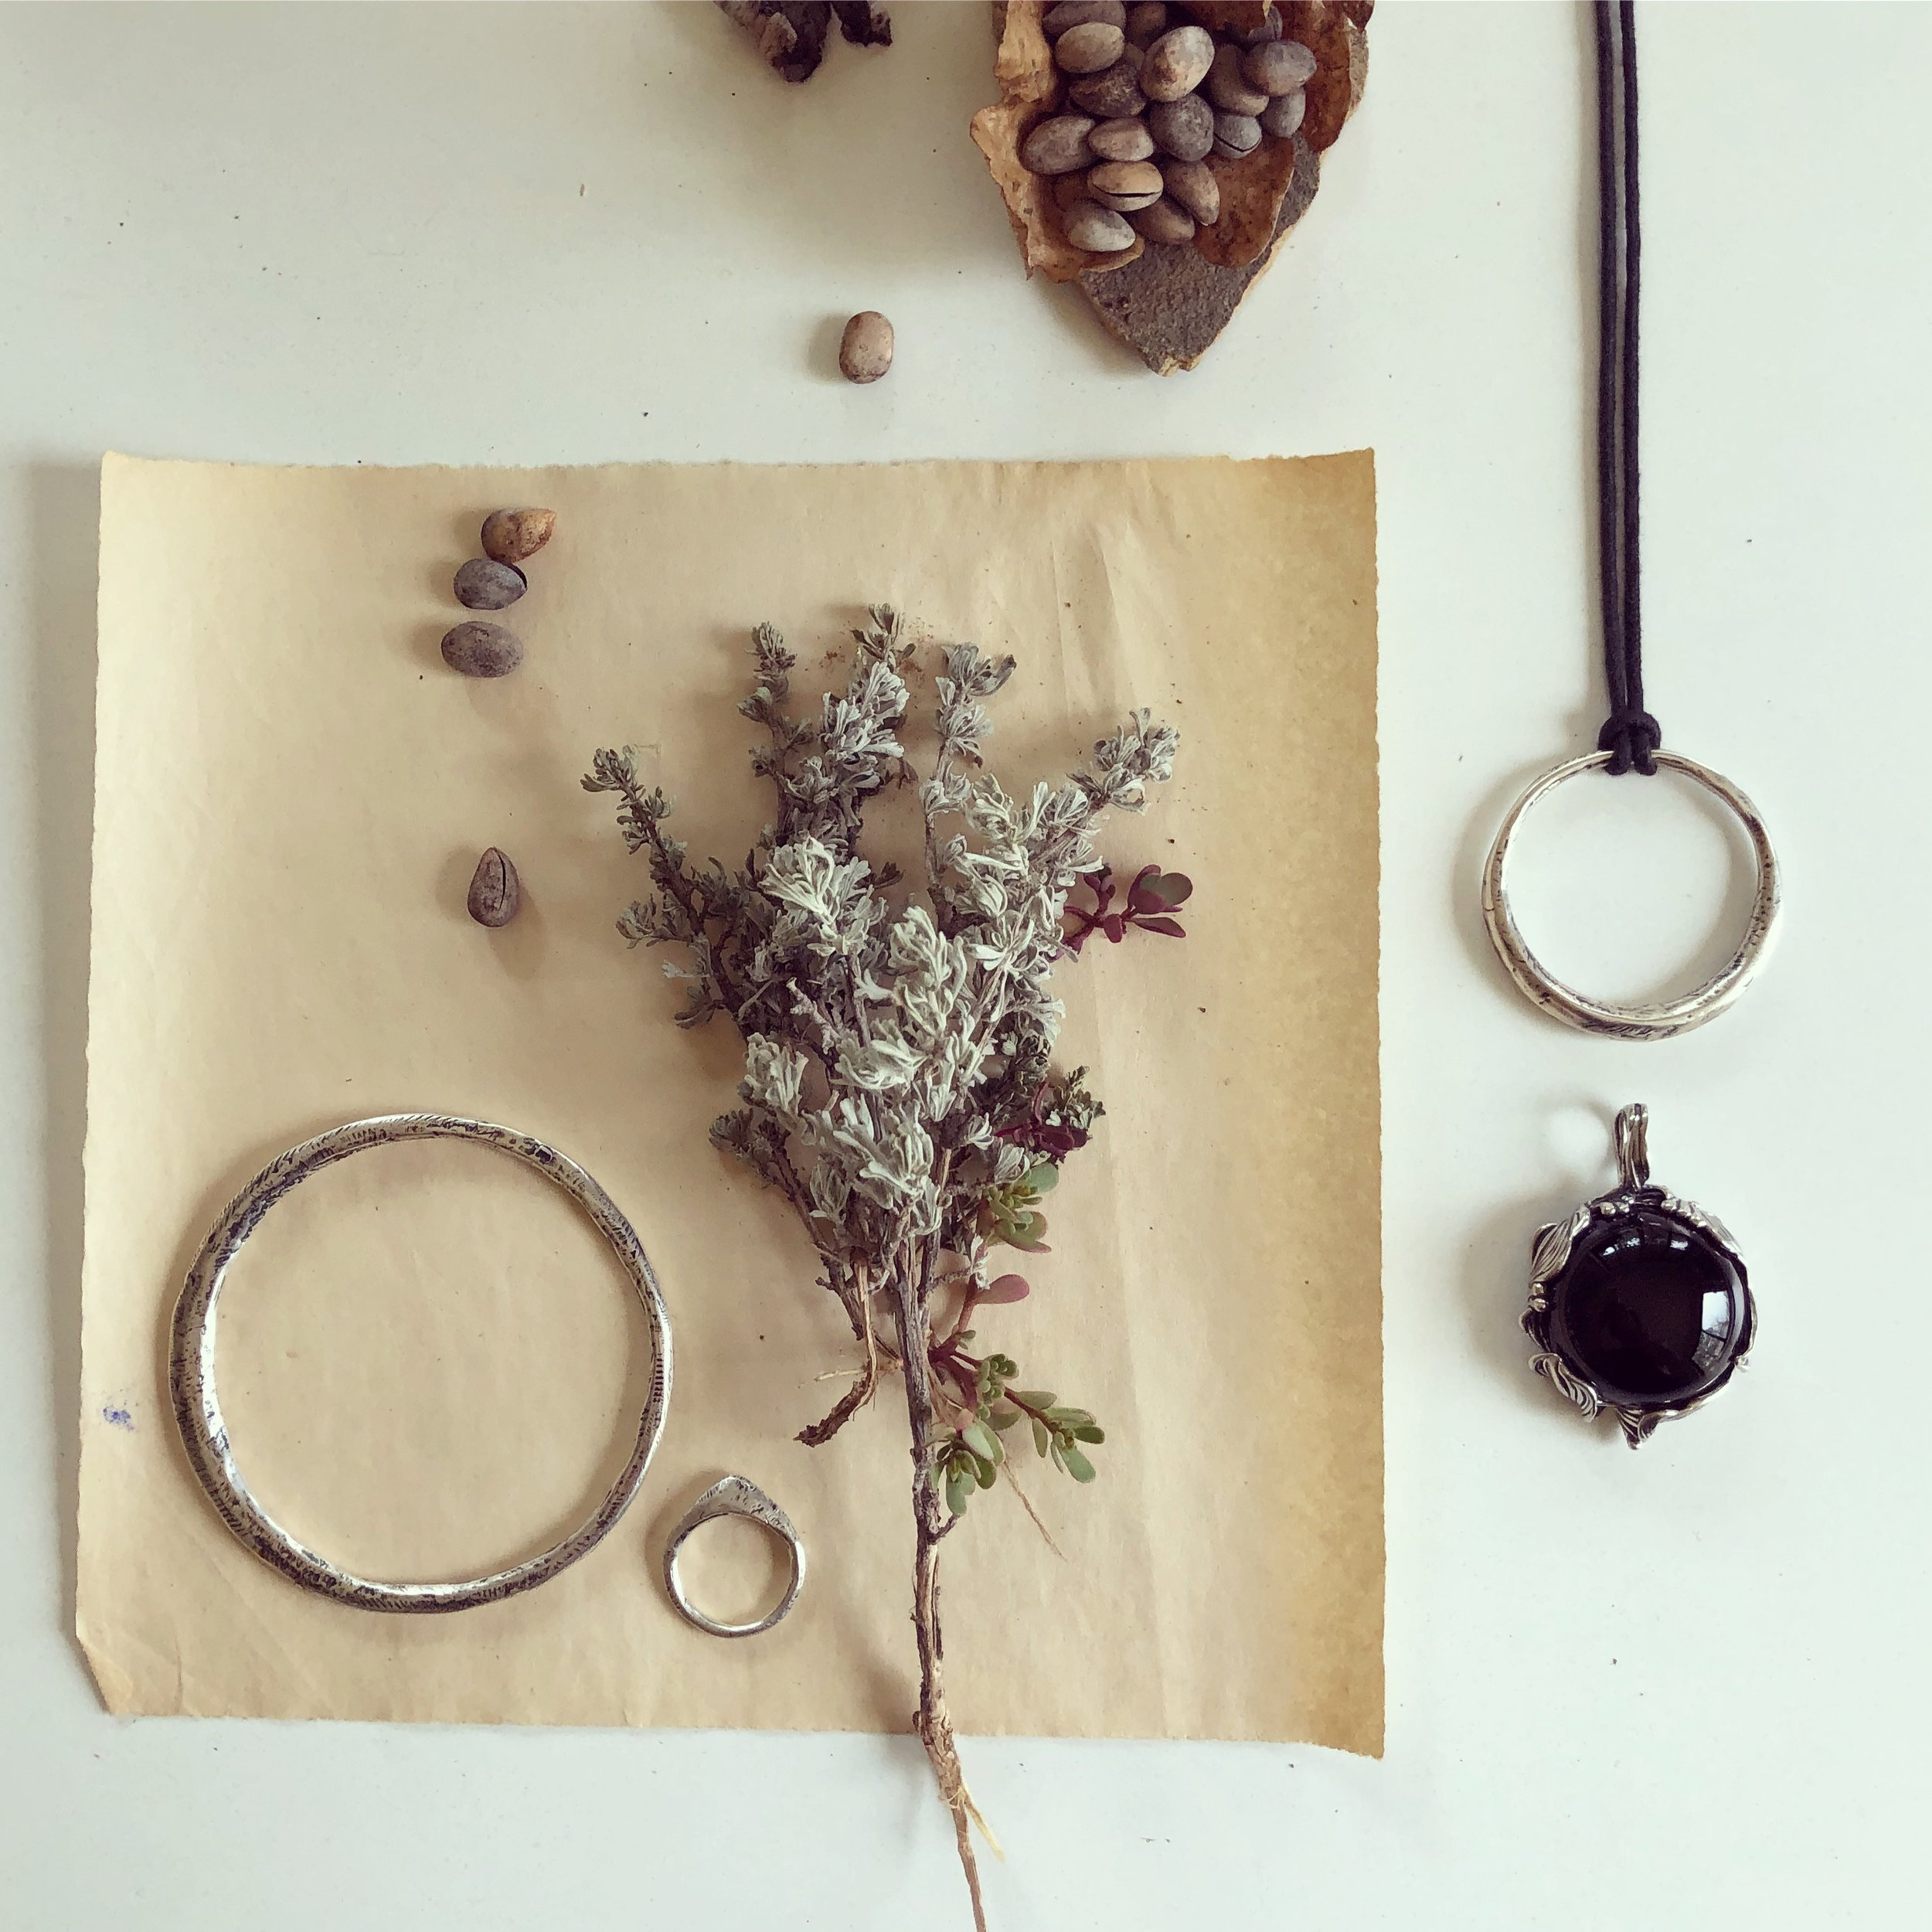 An offering of sage, piñon pine nuts, the moon, black onyx for grounding, a mountain, and leaves from my beloved Willowtail...